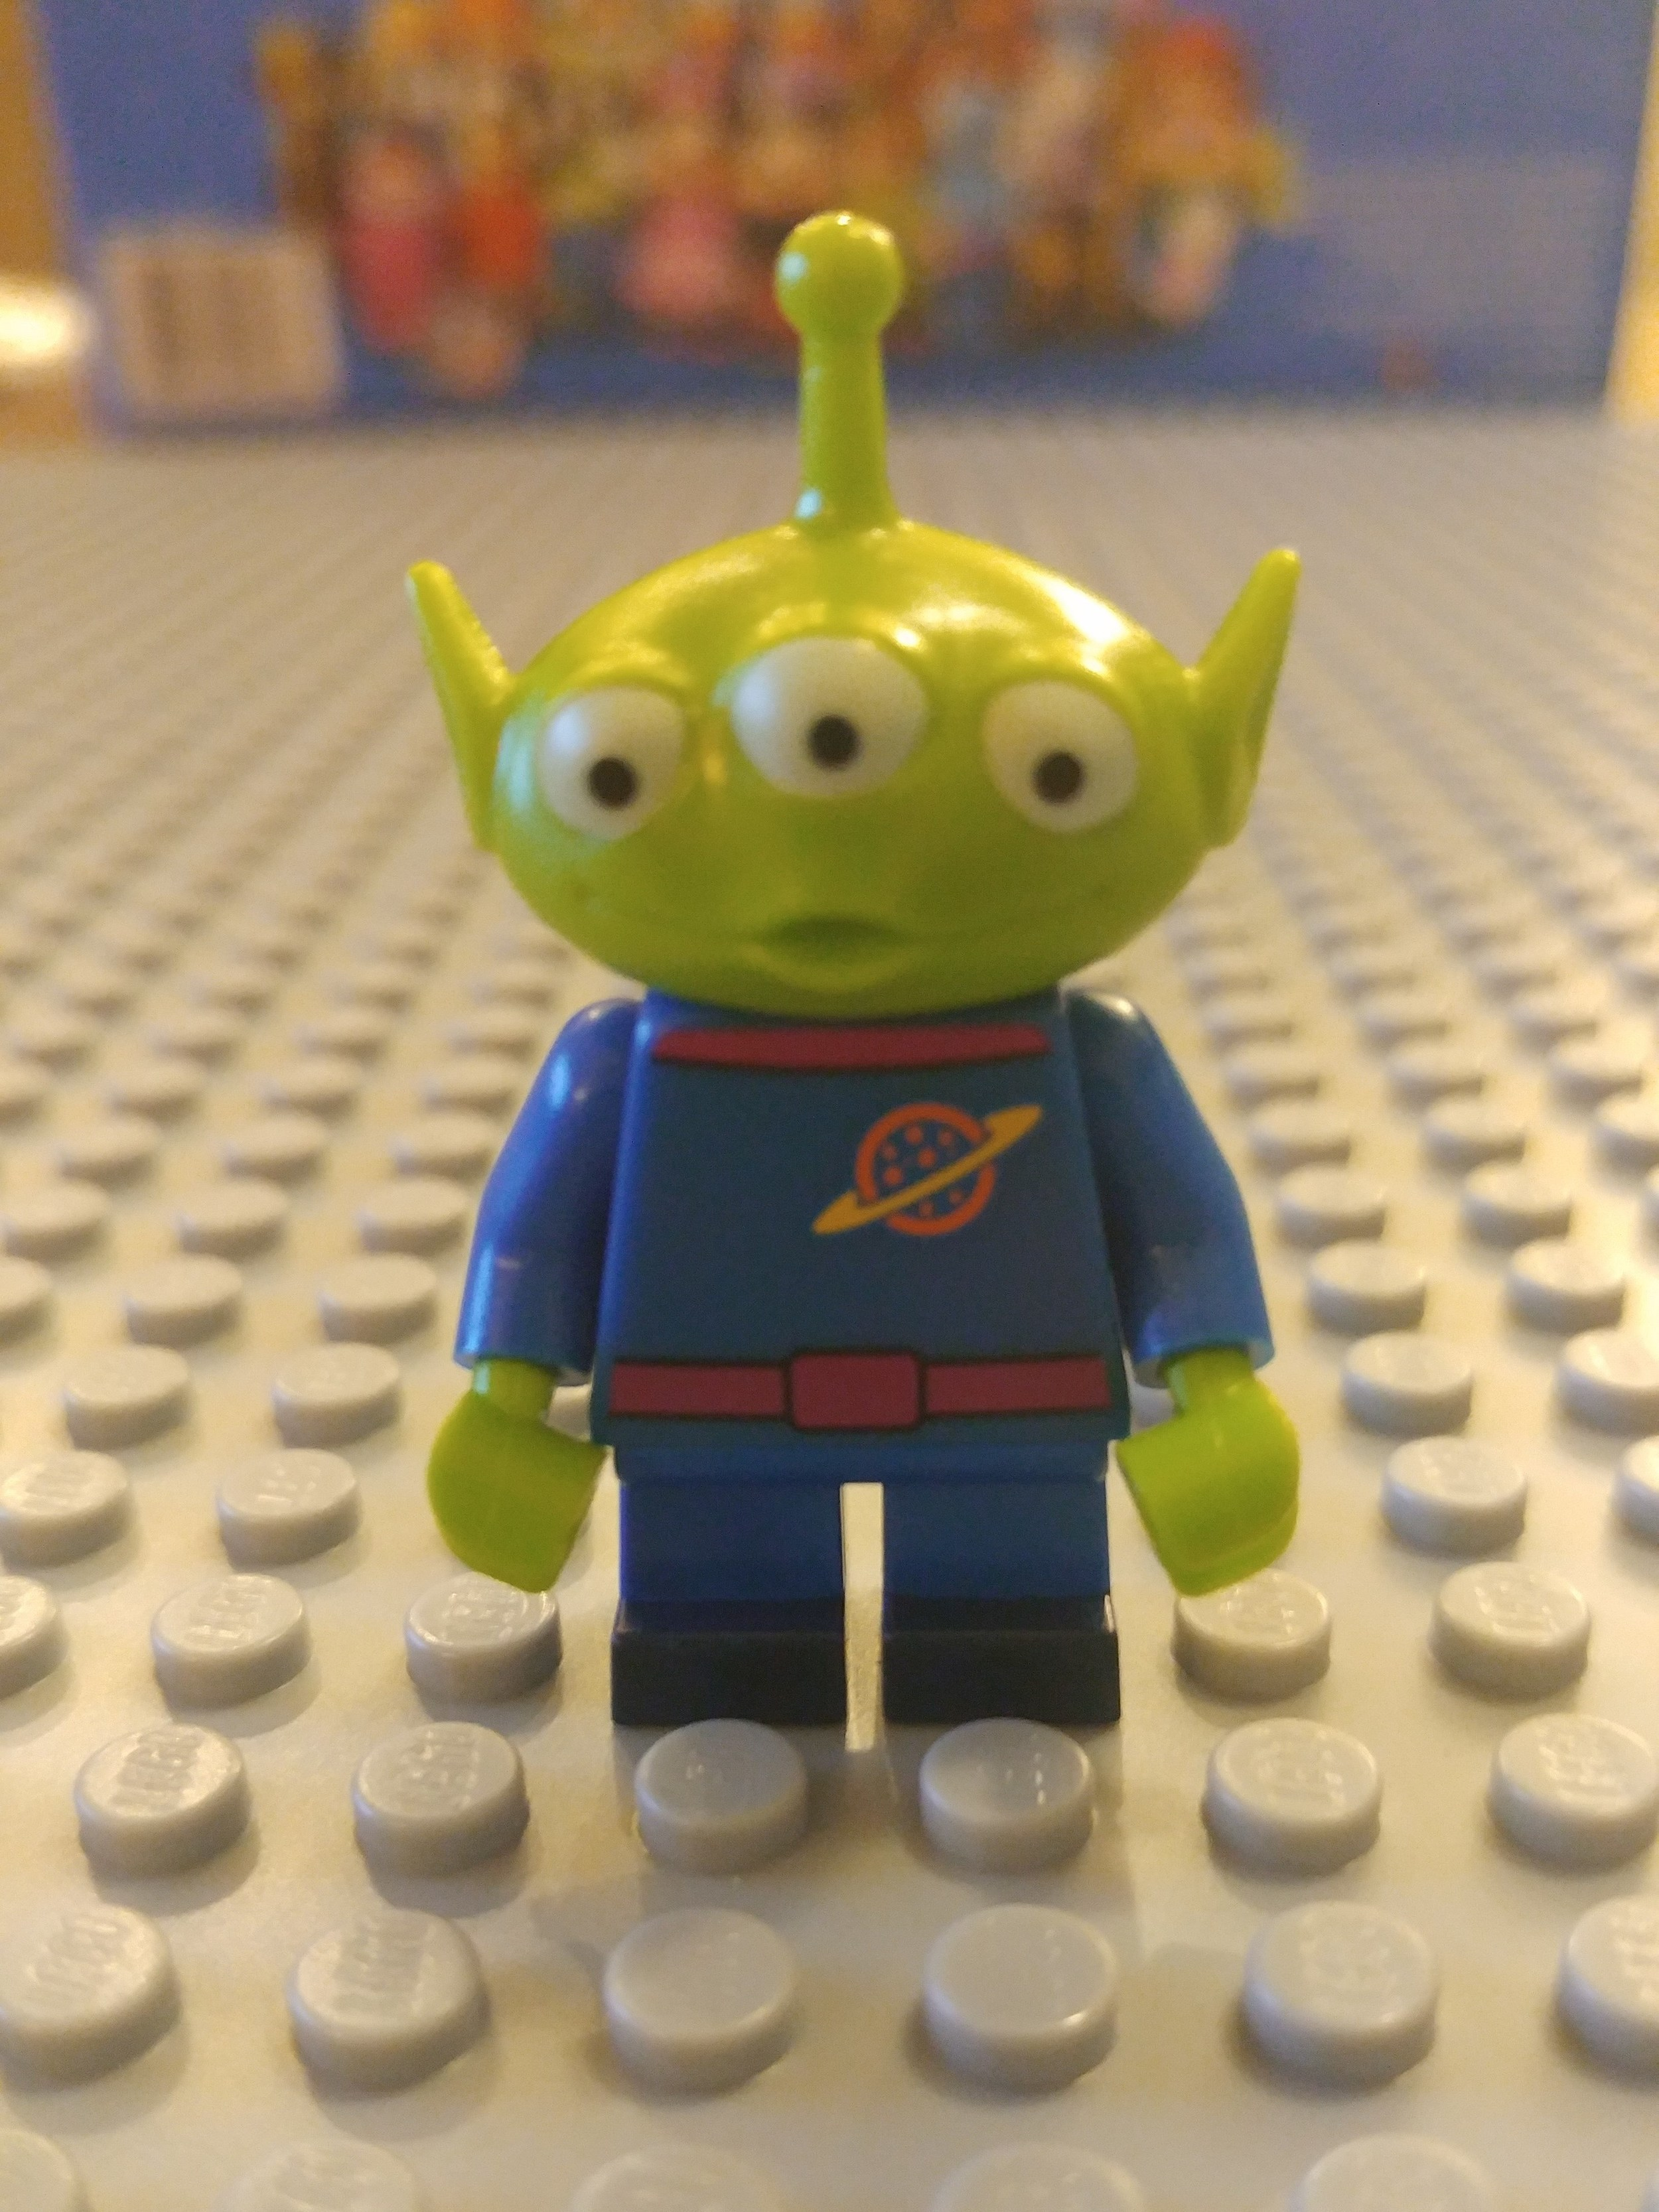 Toy Story Alien Minifig Close Up - Front